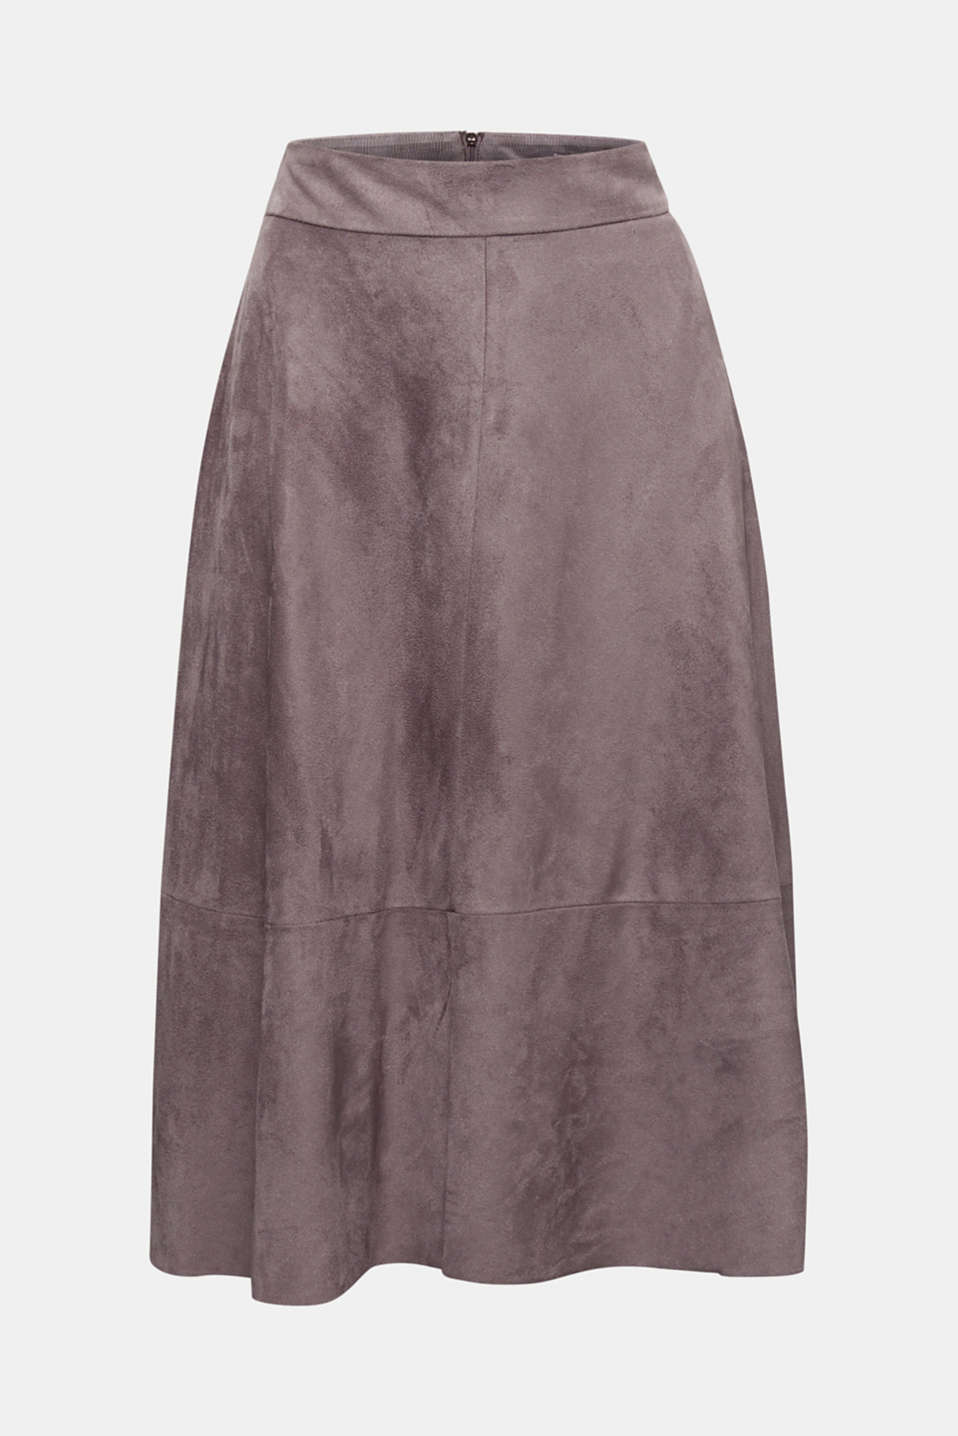 Faux leather skirt, vegan, TAUPE, detail image number 6